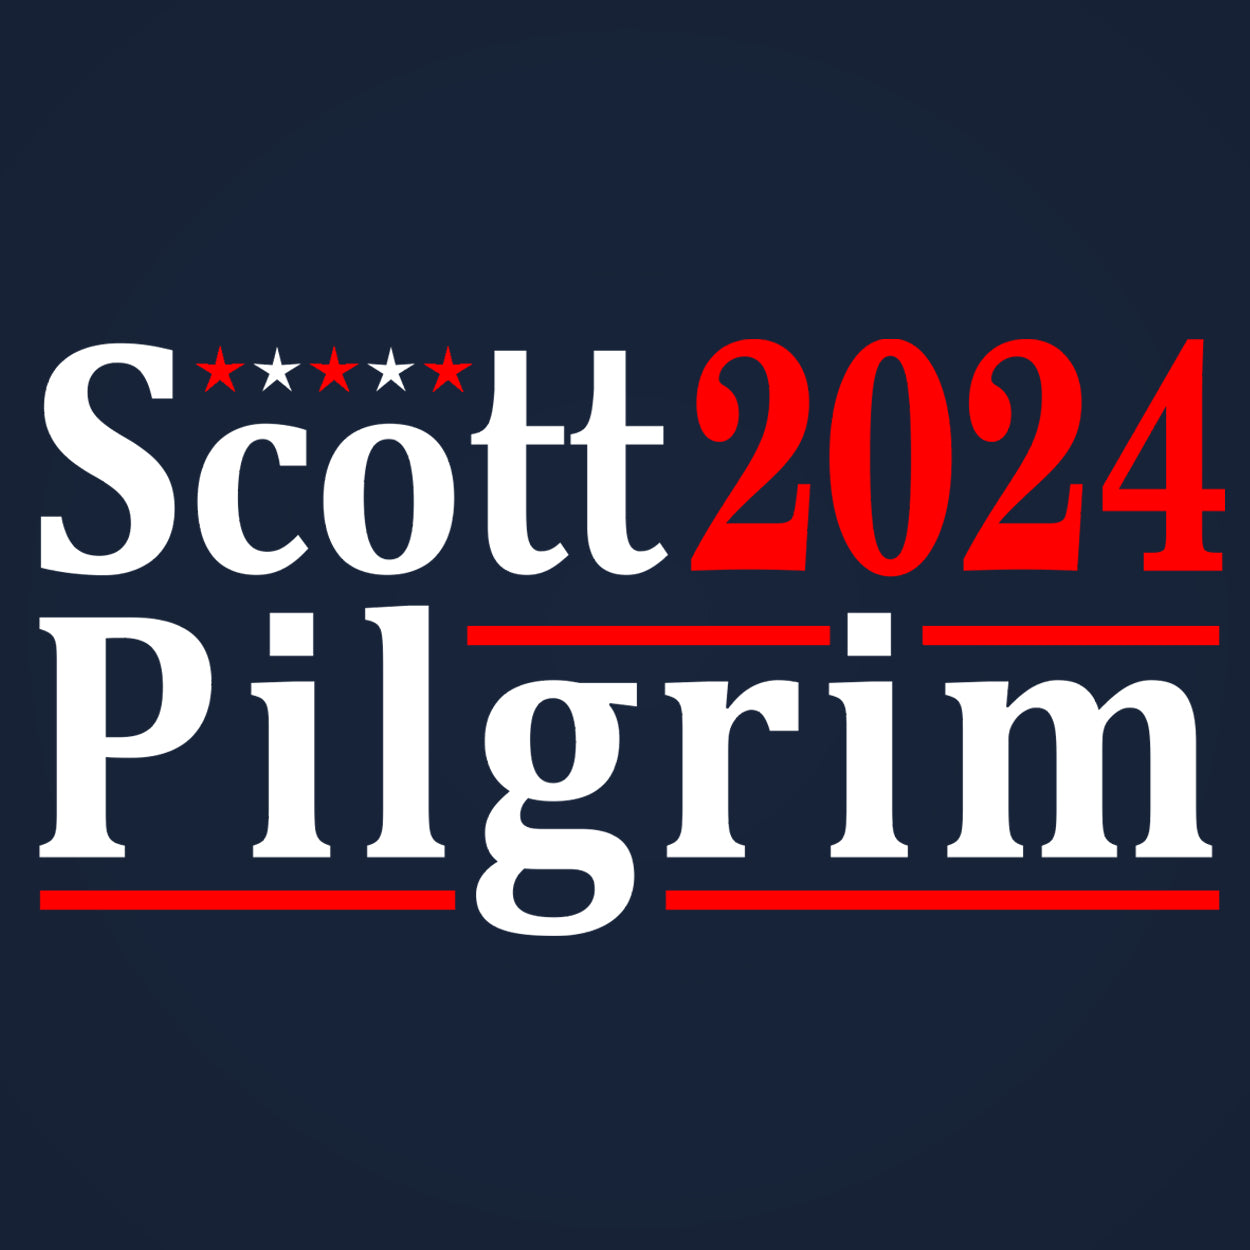 SCOTT PILGRIM 2024 ELECTION